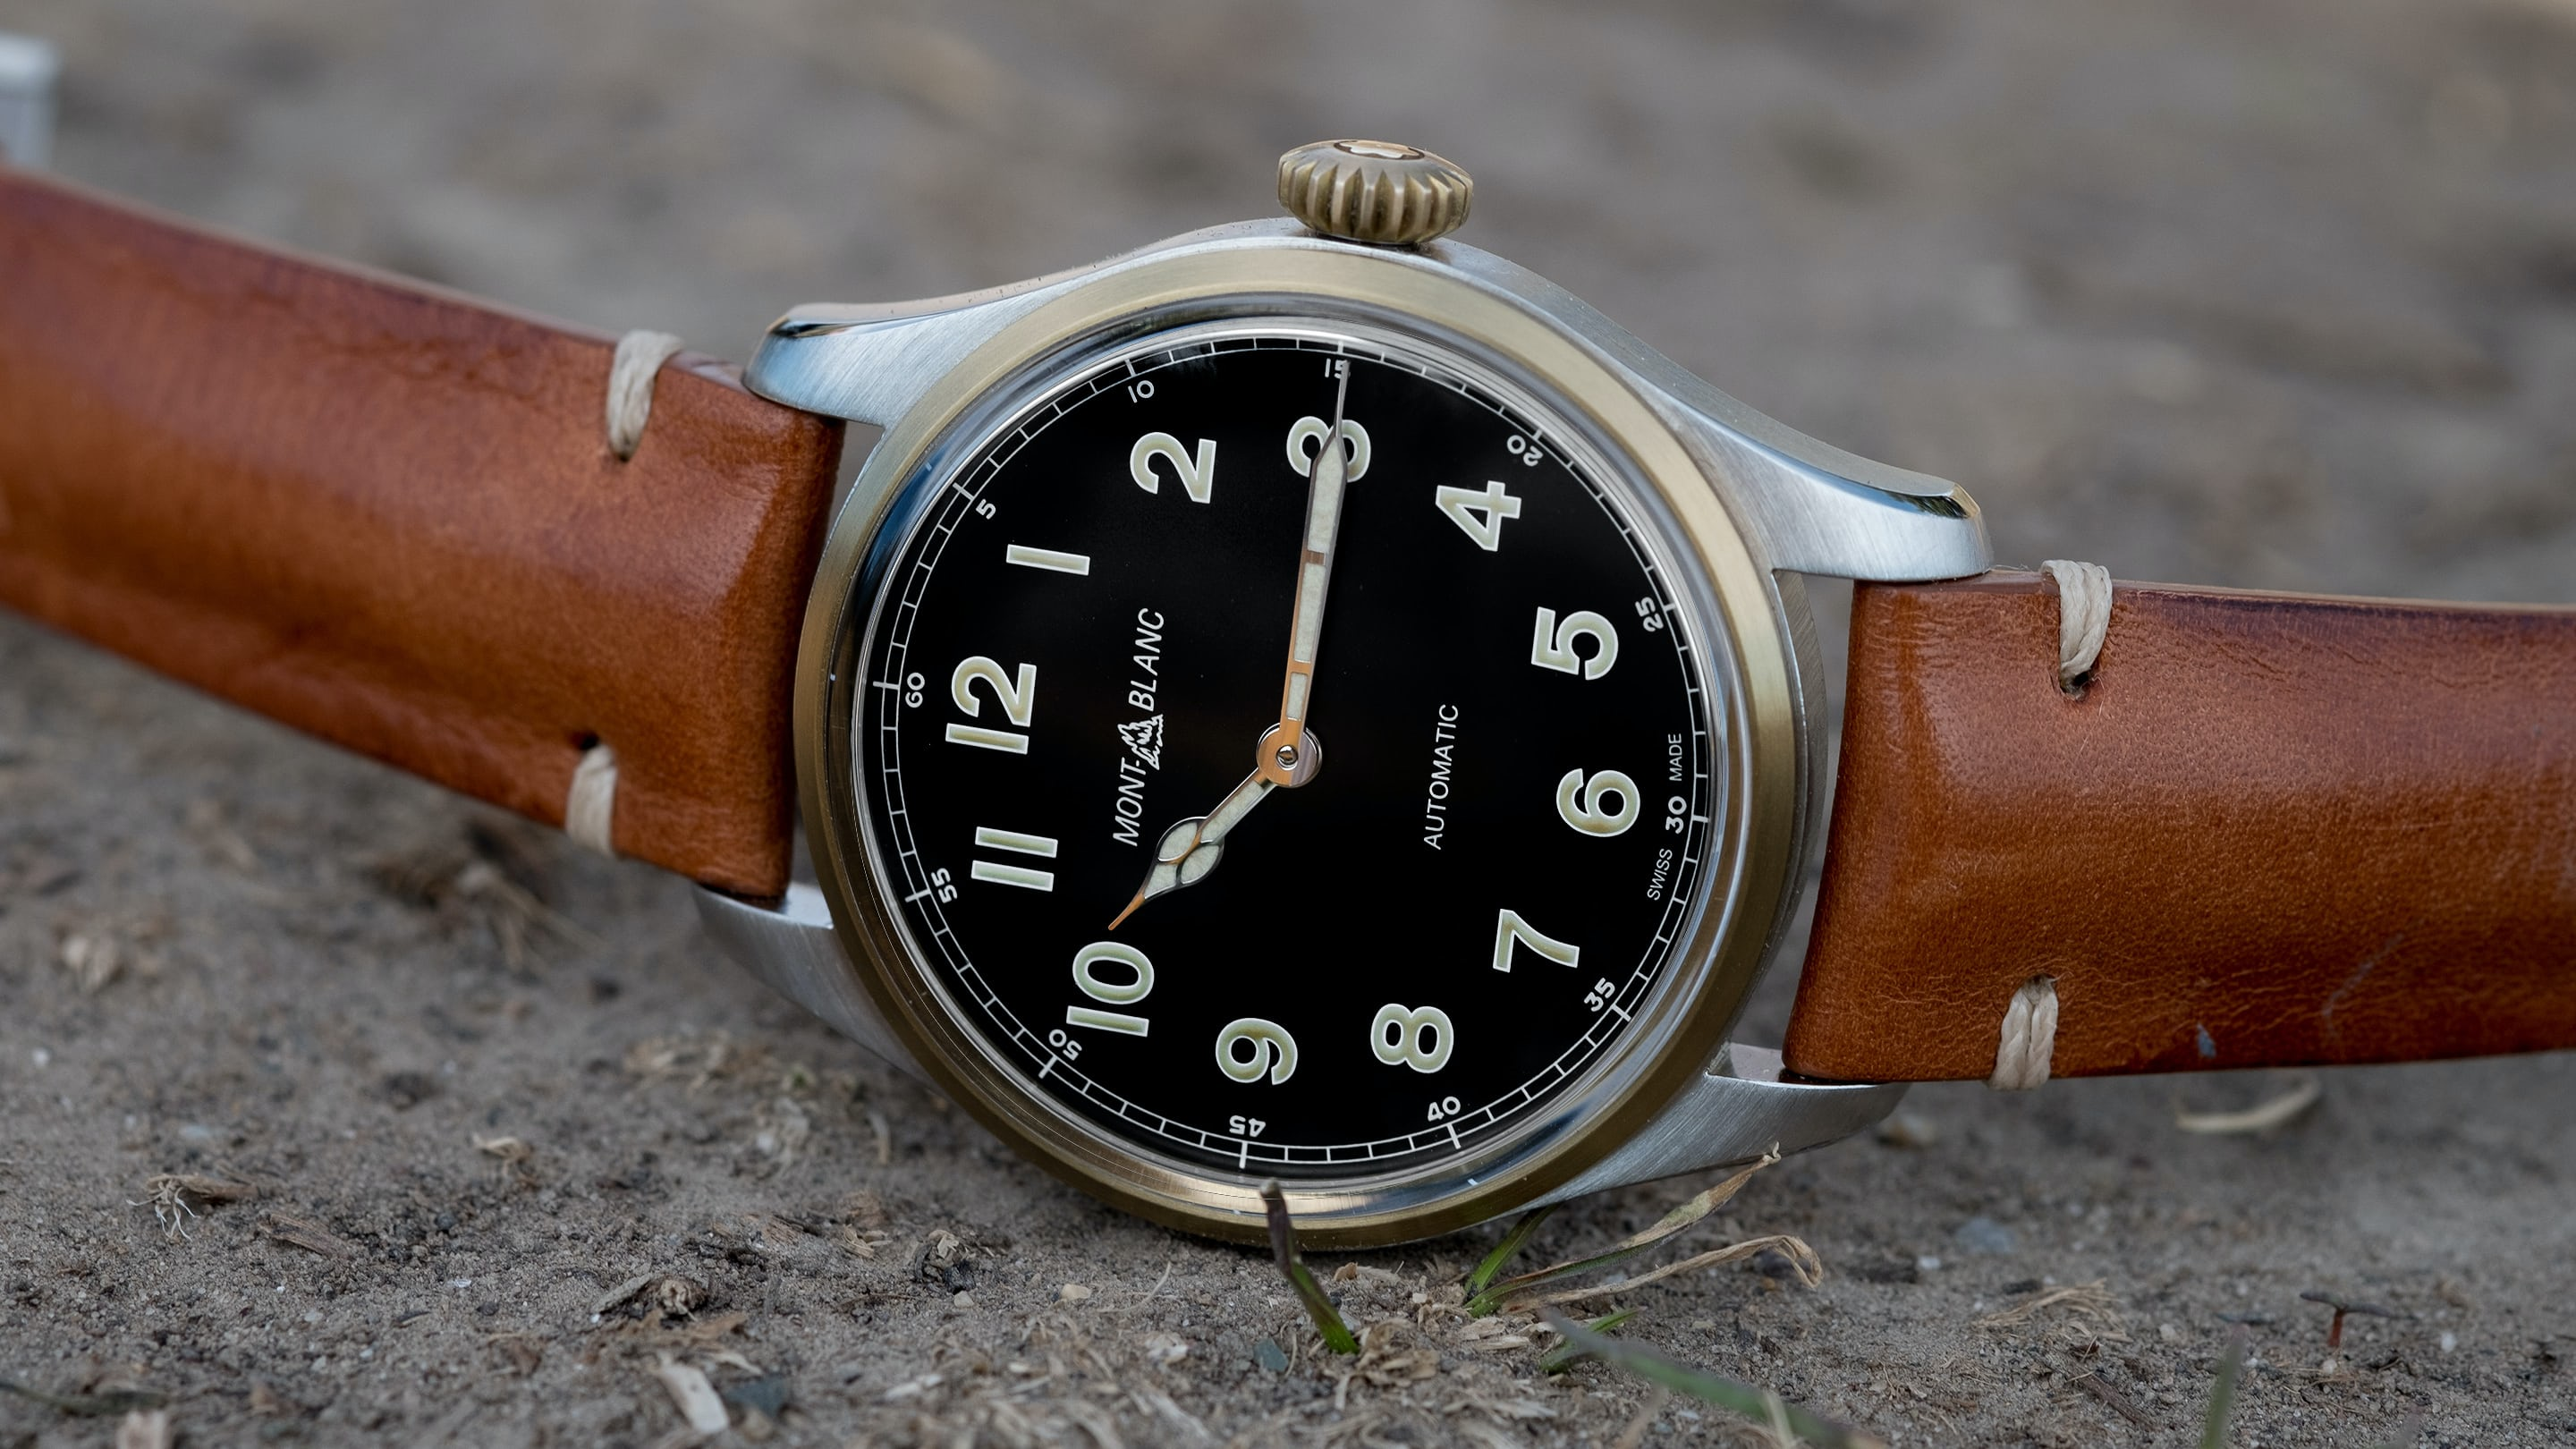 41c99c703d8 Introducing: The Montblanc 1858 Automatic (Live Pics & Pricing) - HODINKEE